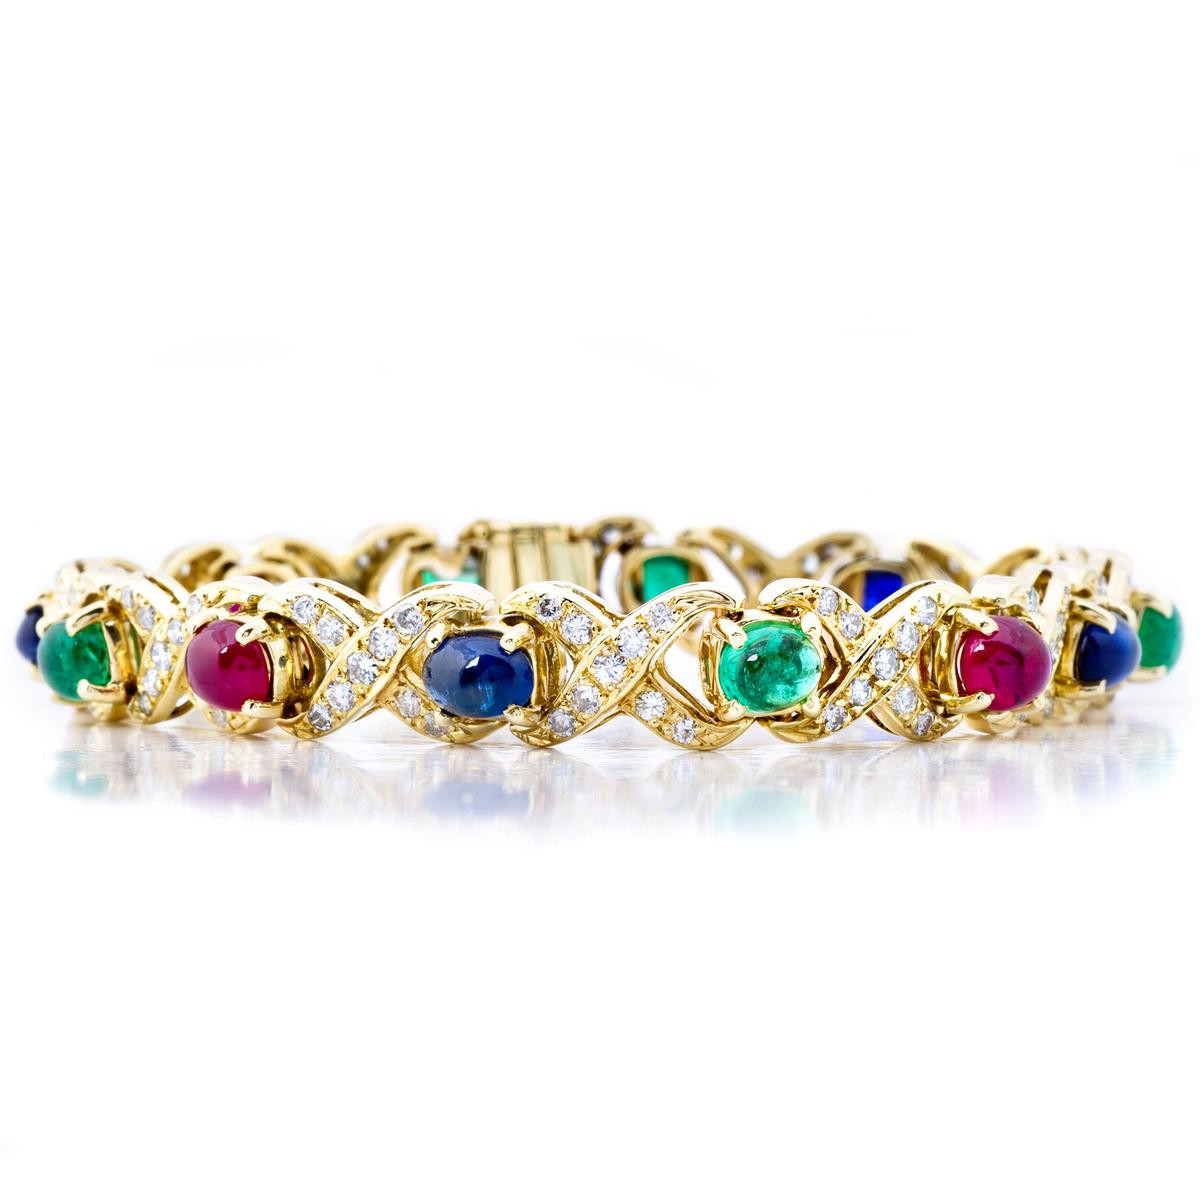 ruby s rare emerald wilke jewelry diamond yg sapphire hammerman bros estate bracelet item